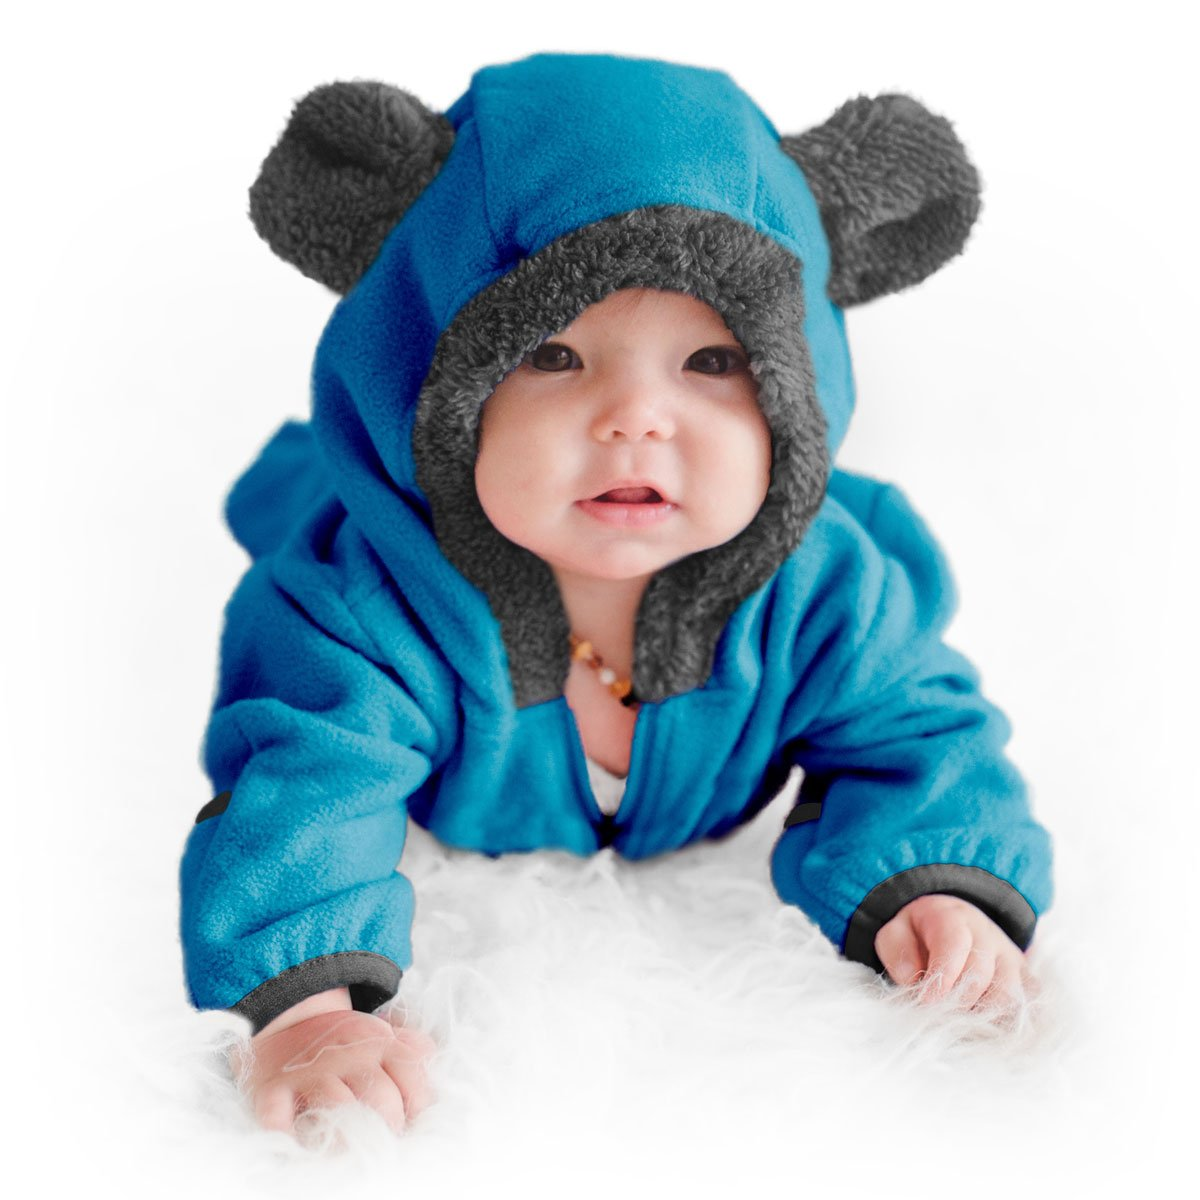 Funzies Fleece Baby Bunting Onesie Jacket – Infant Pajamas Winter Outerwear Coat Costume